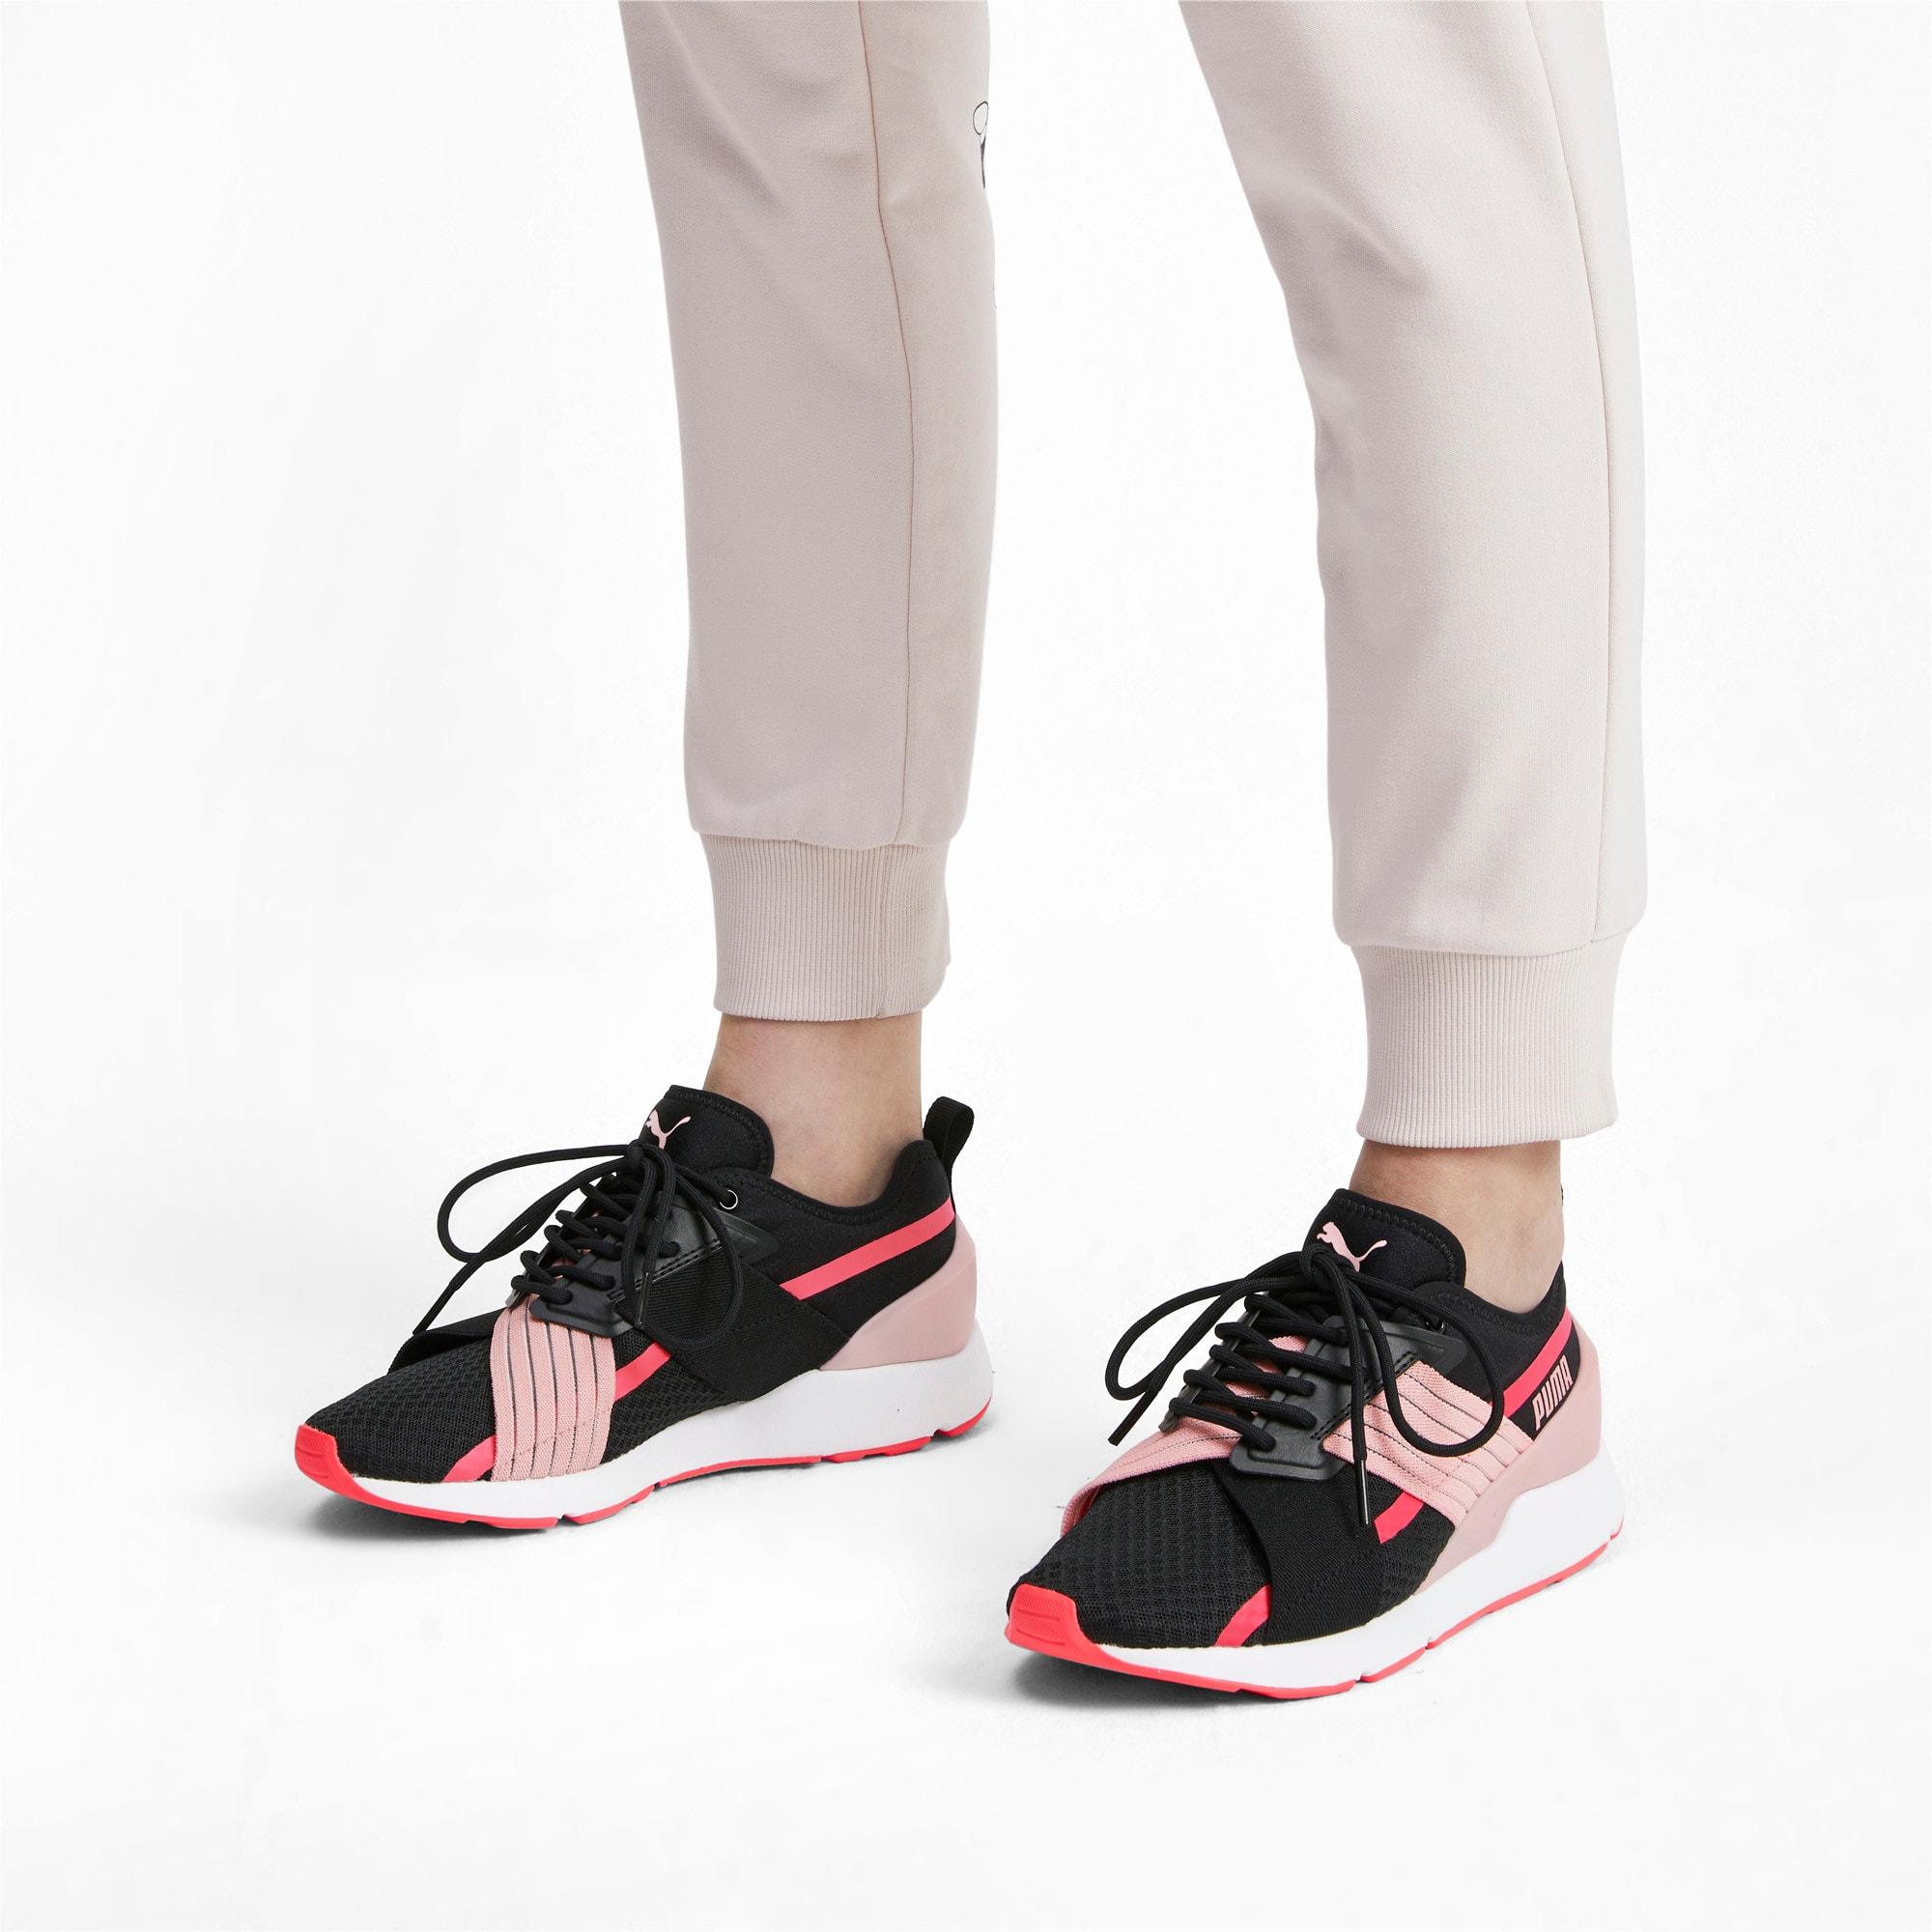 Thumbnail 2 of Muse X-2 Women's Sneakers, Puma Black-Bridal Rose, medium